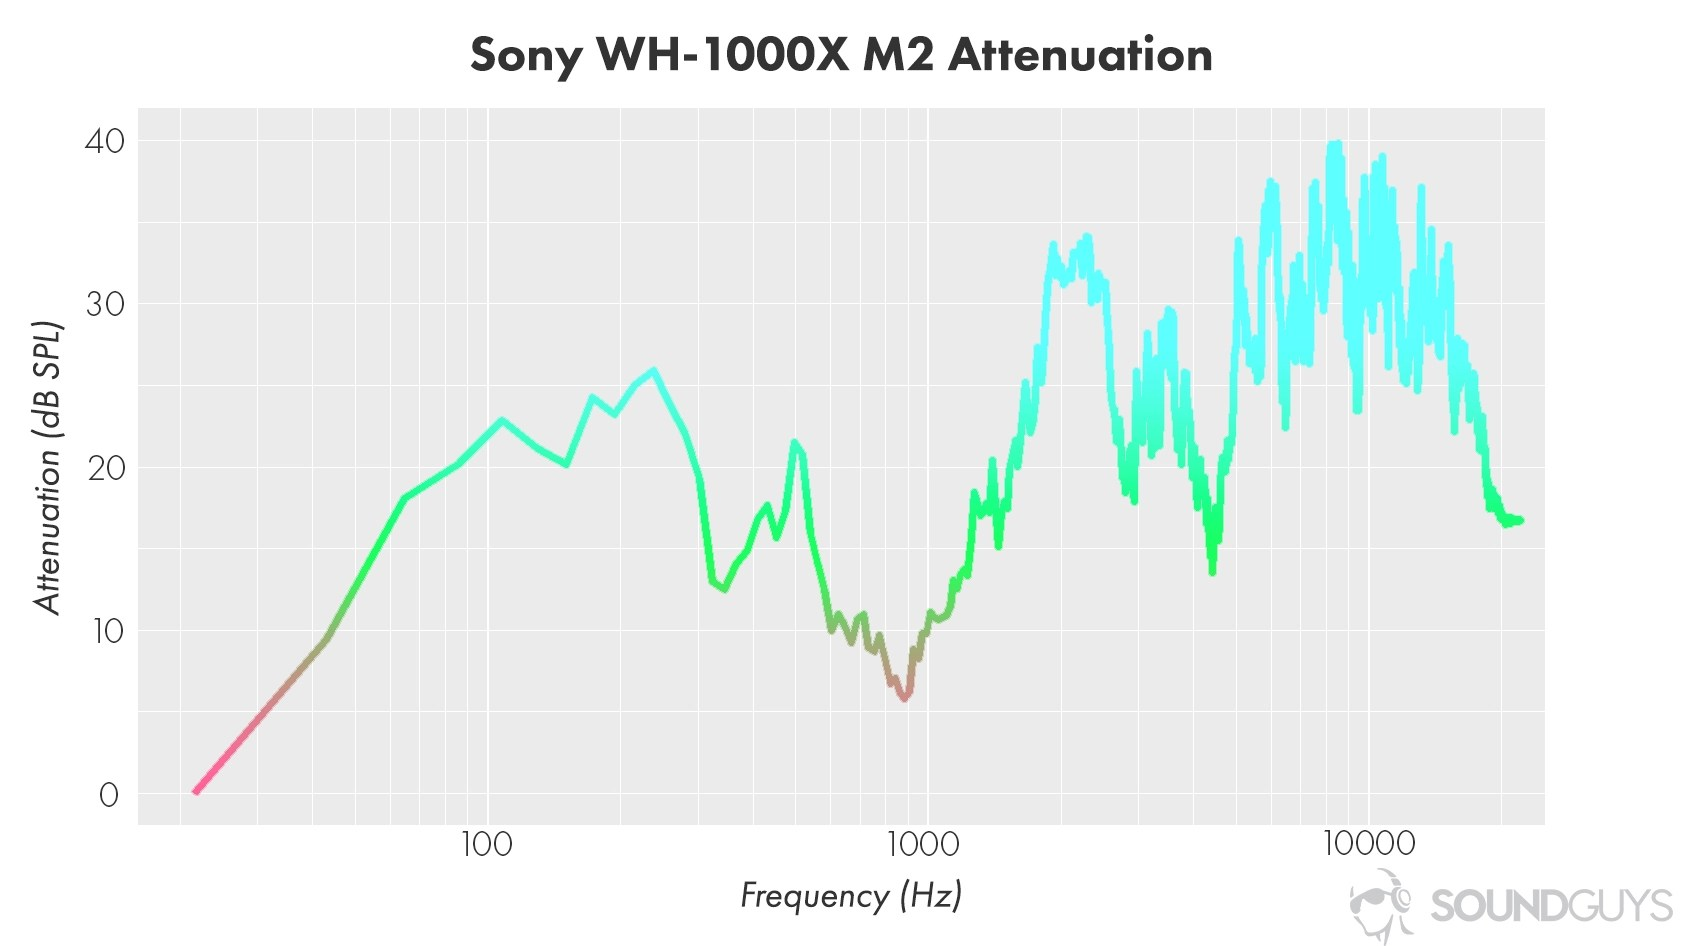 hight resolution of a chart showing the active noise cancellation performance of the sony wh 1000xm2 wireless bluetooth